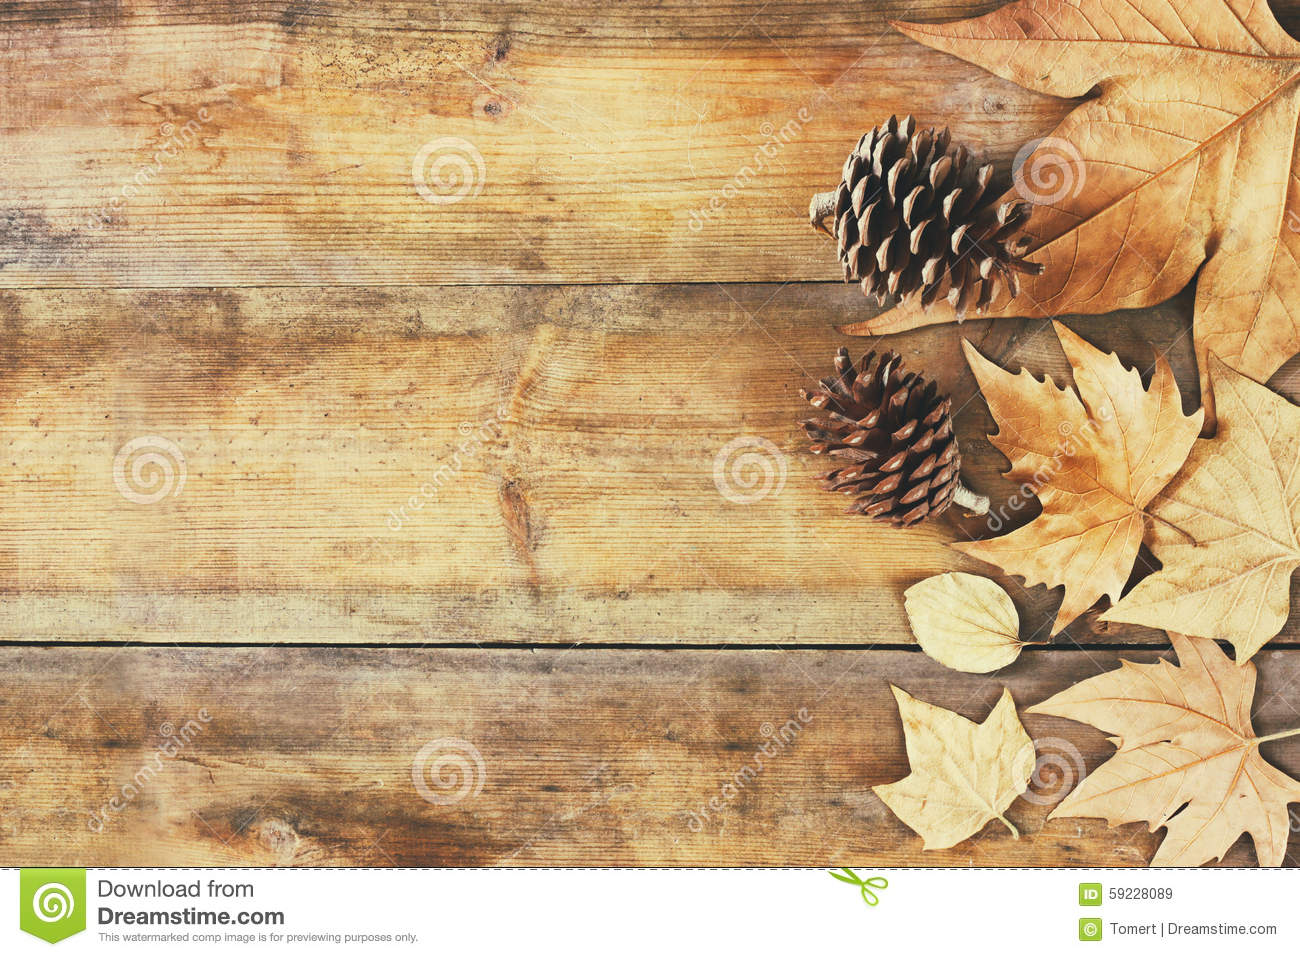 Top View Image Of Autumn Leaves And Pine Cones Over Wooden